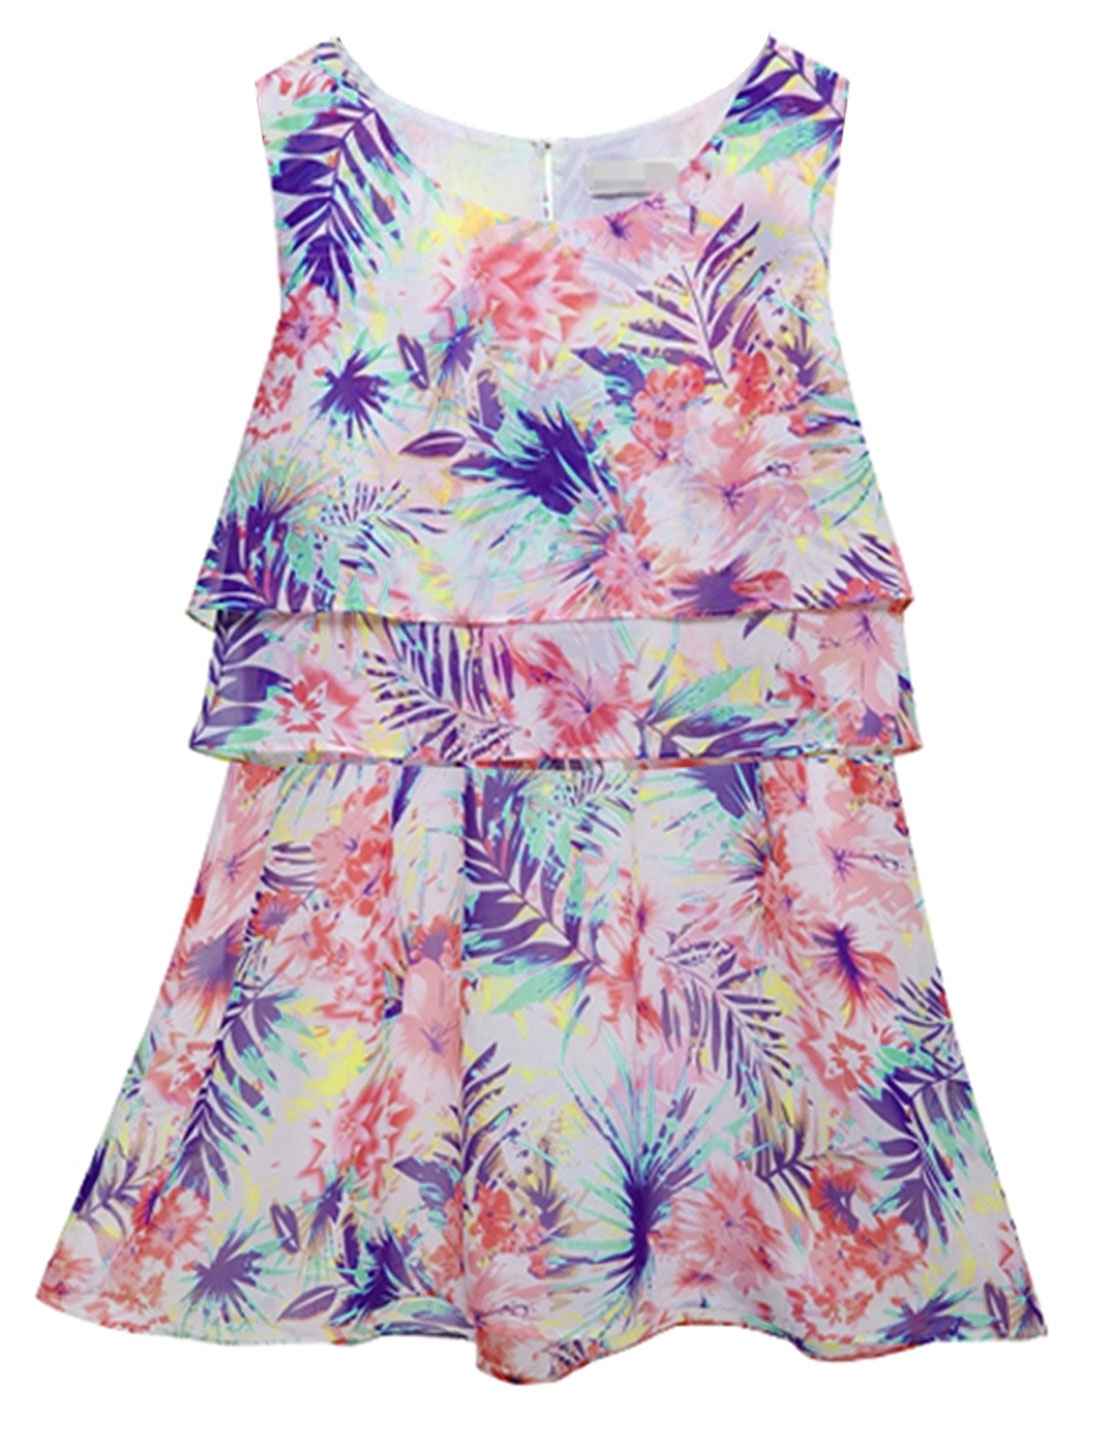 Lady Round Neck Floral Pattern Tiered Ruffles Design Casual Dress Multicolor S